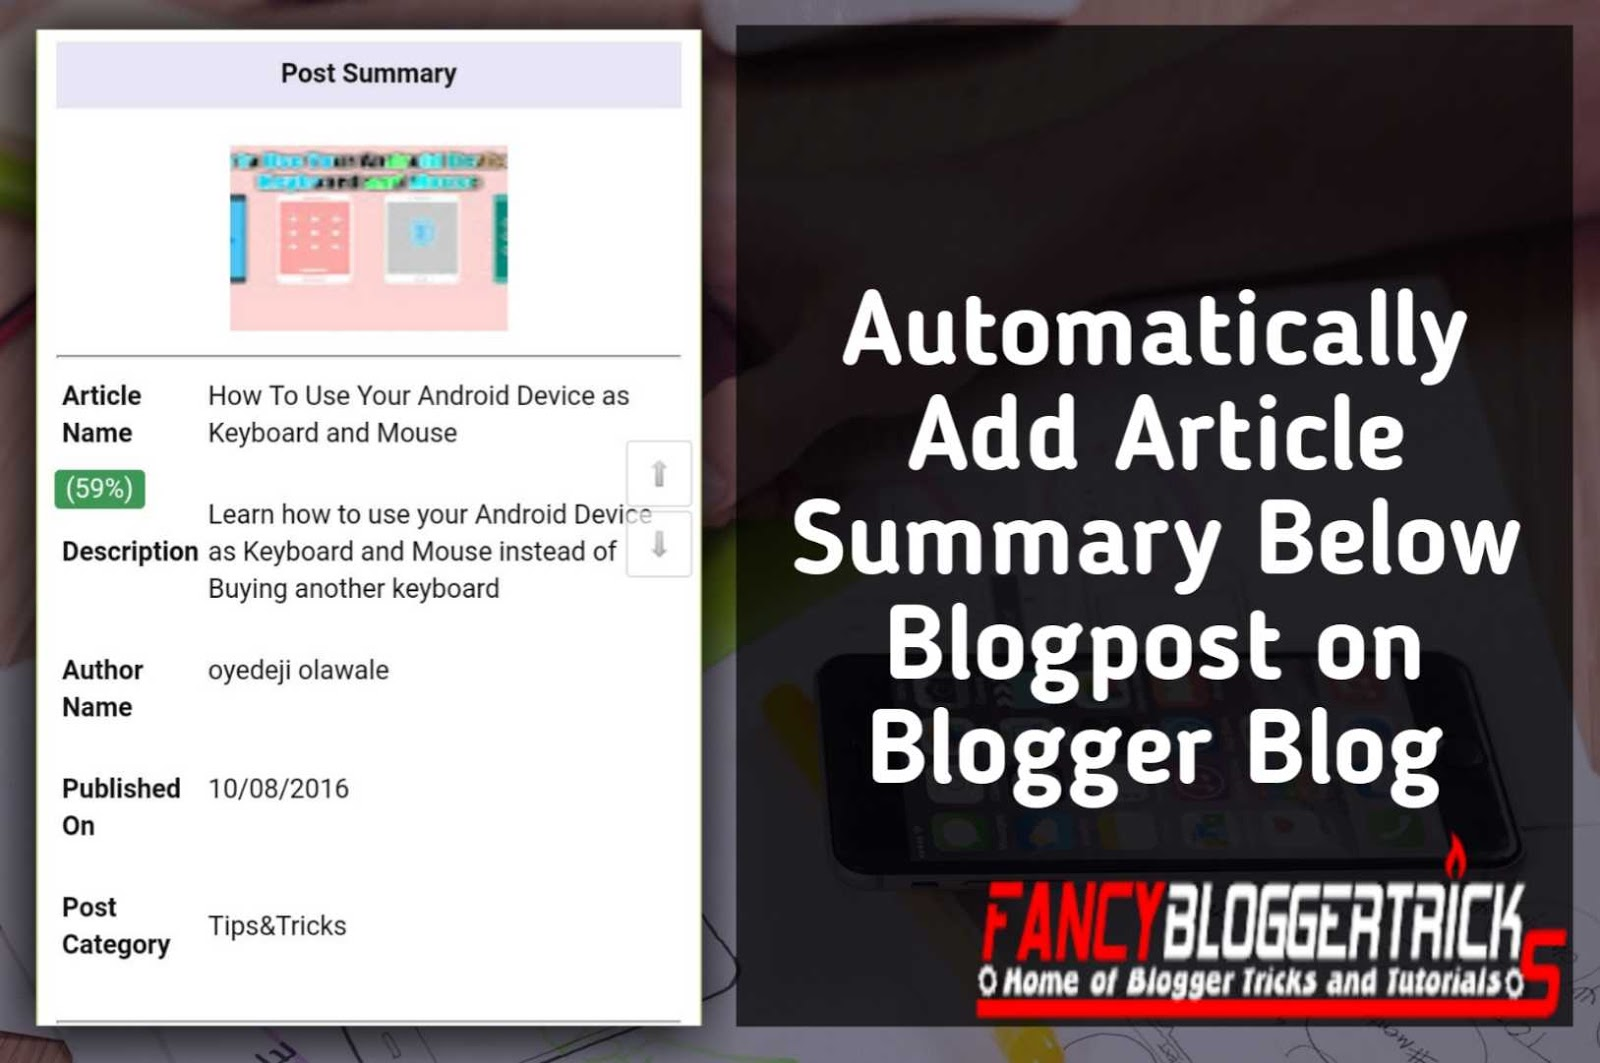 Automatically Add Article Summary Below Blogpost